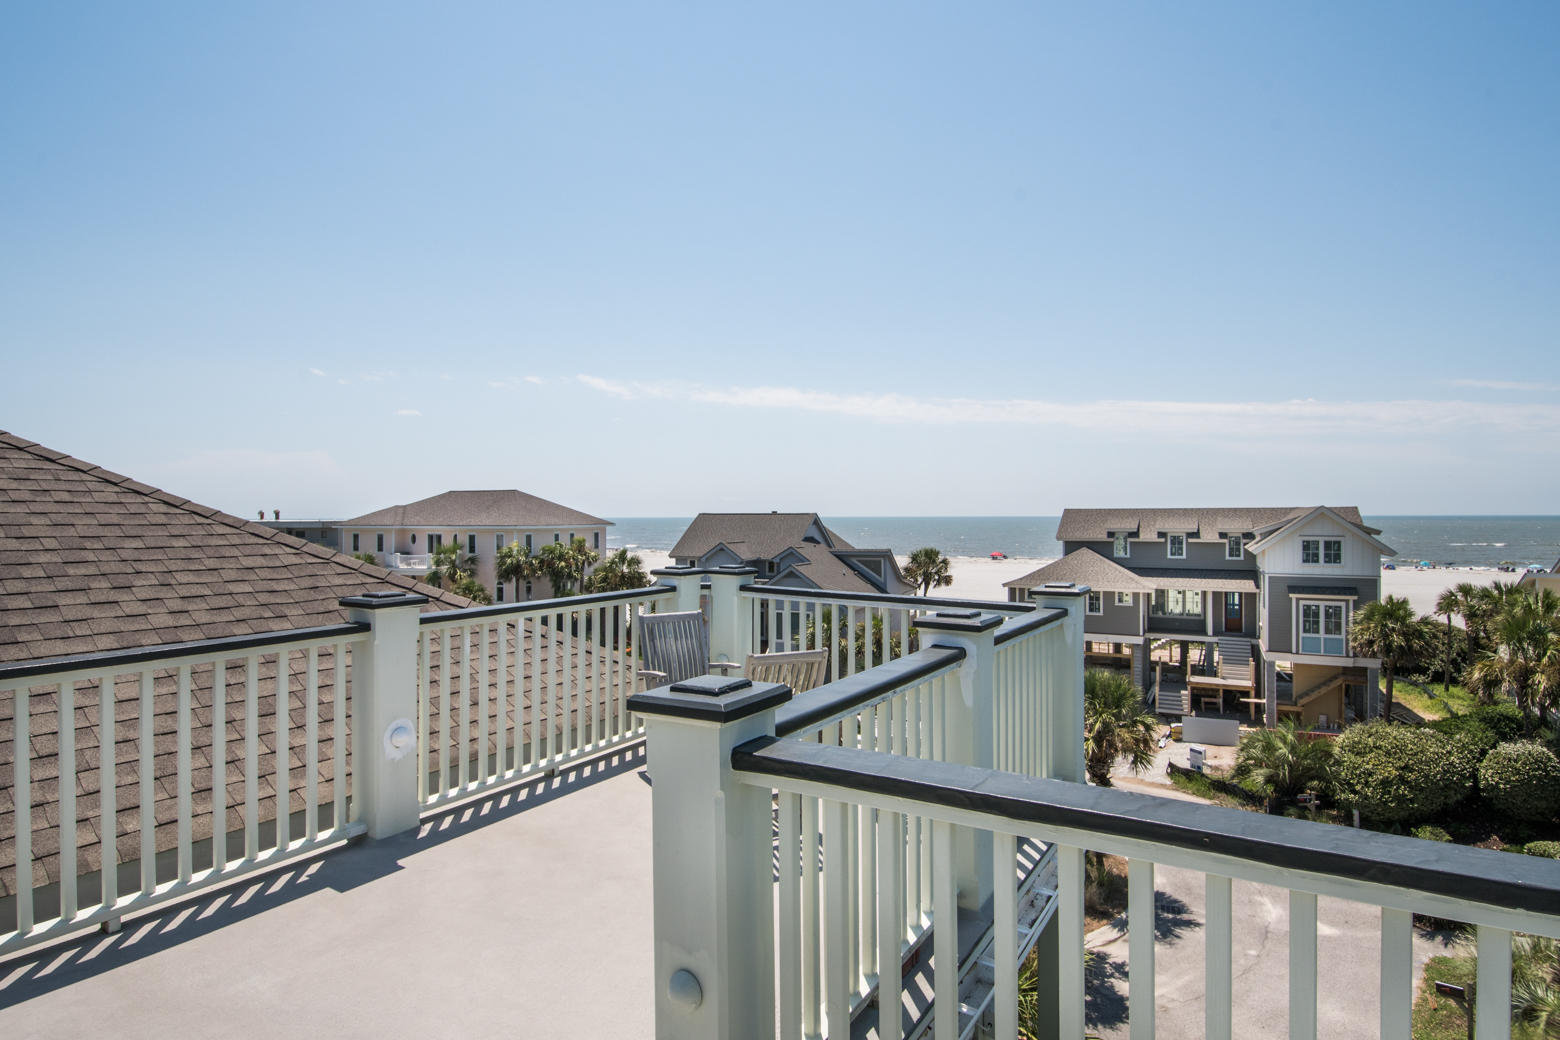 6 Beachwood E Isle Of Palms, SC 29451